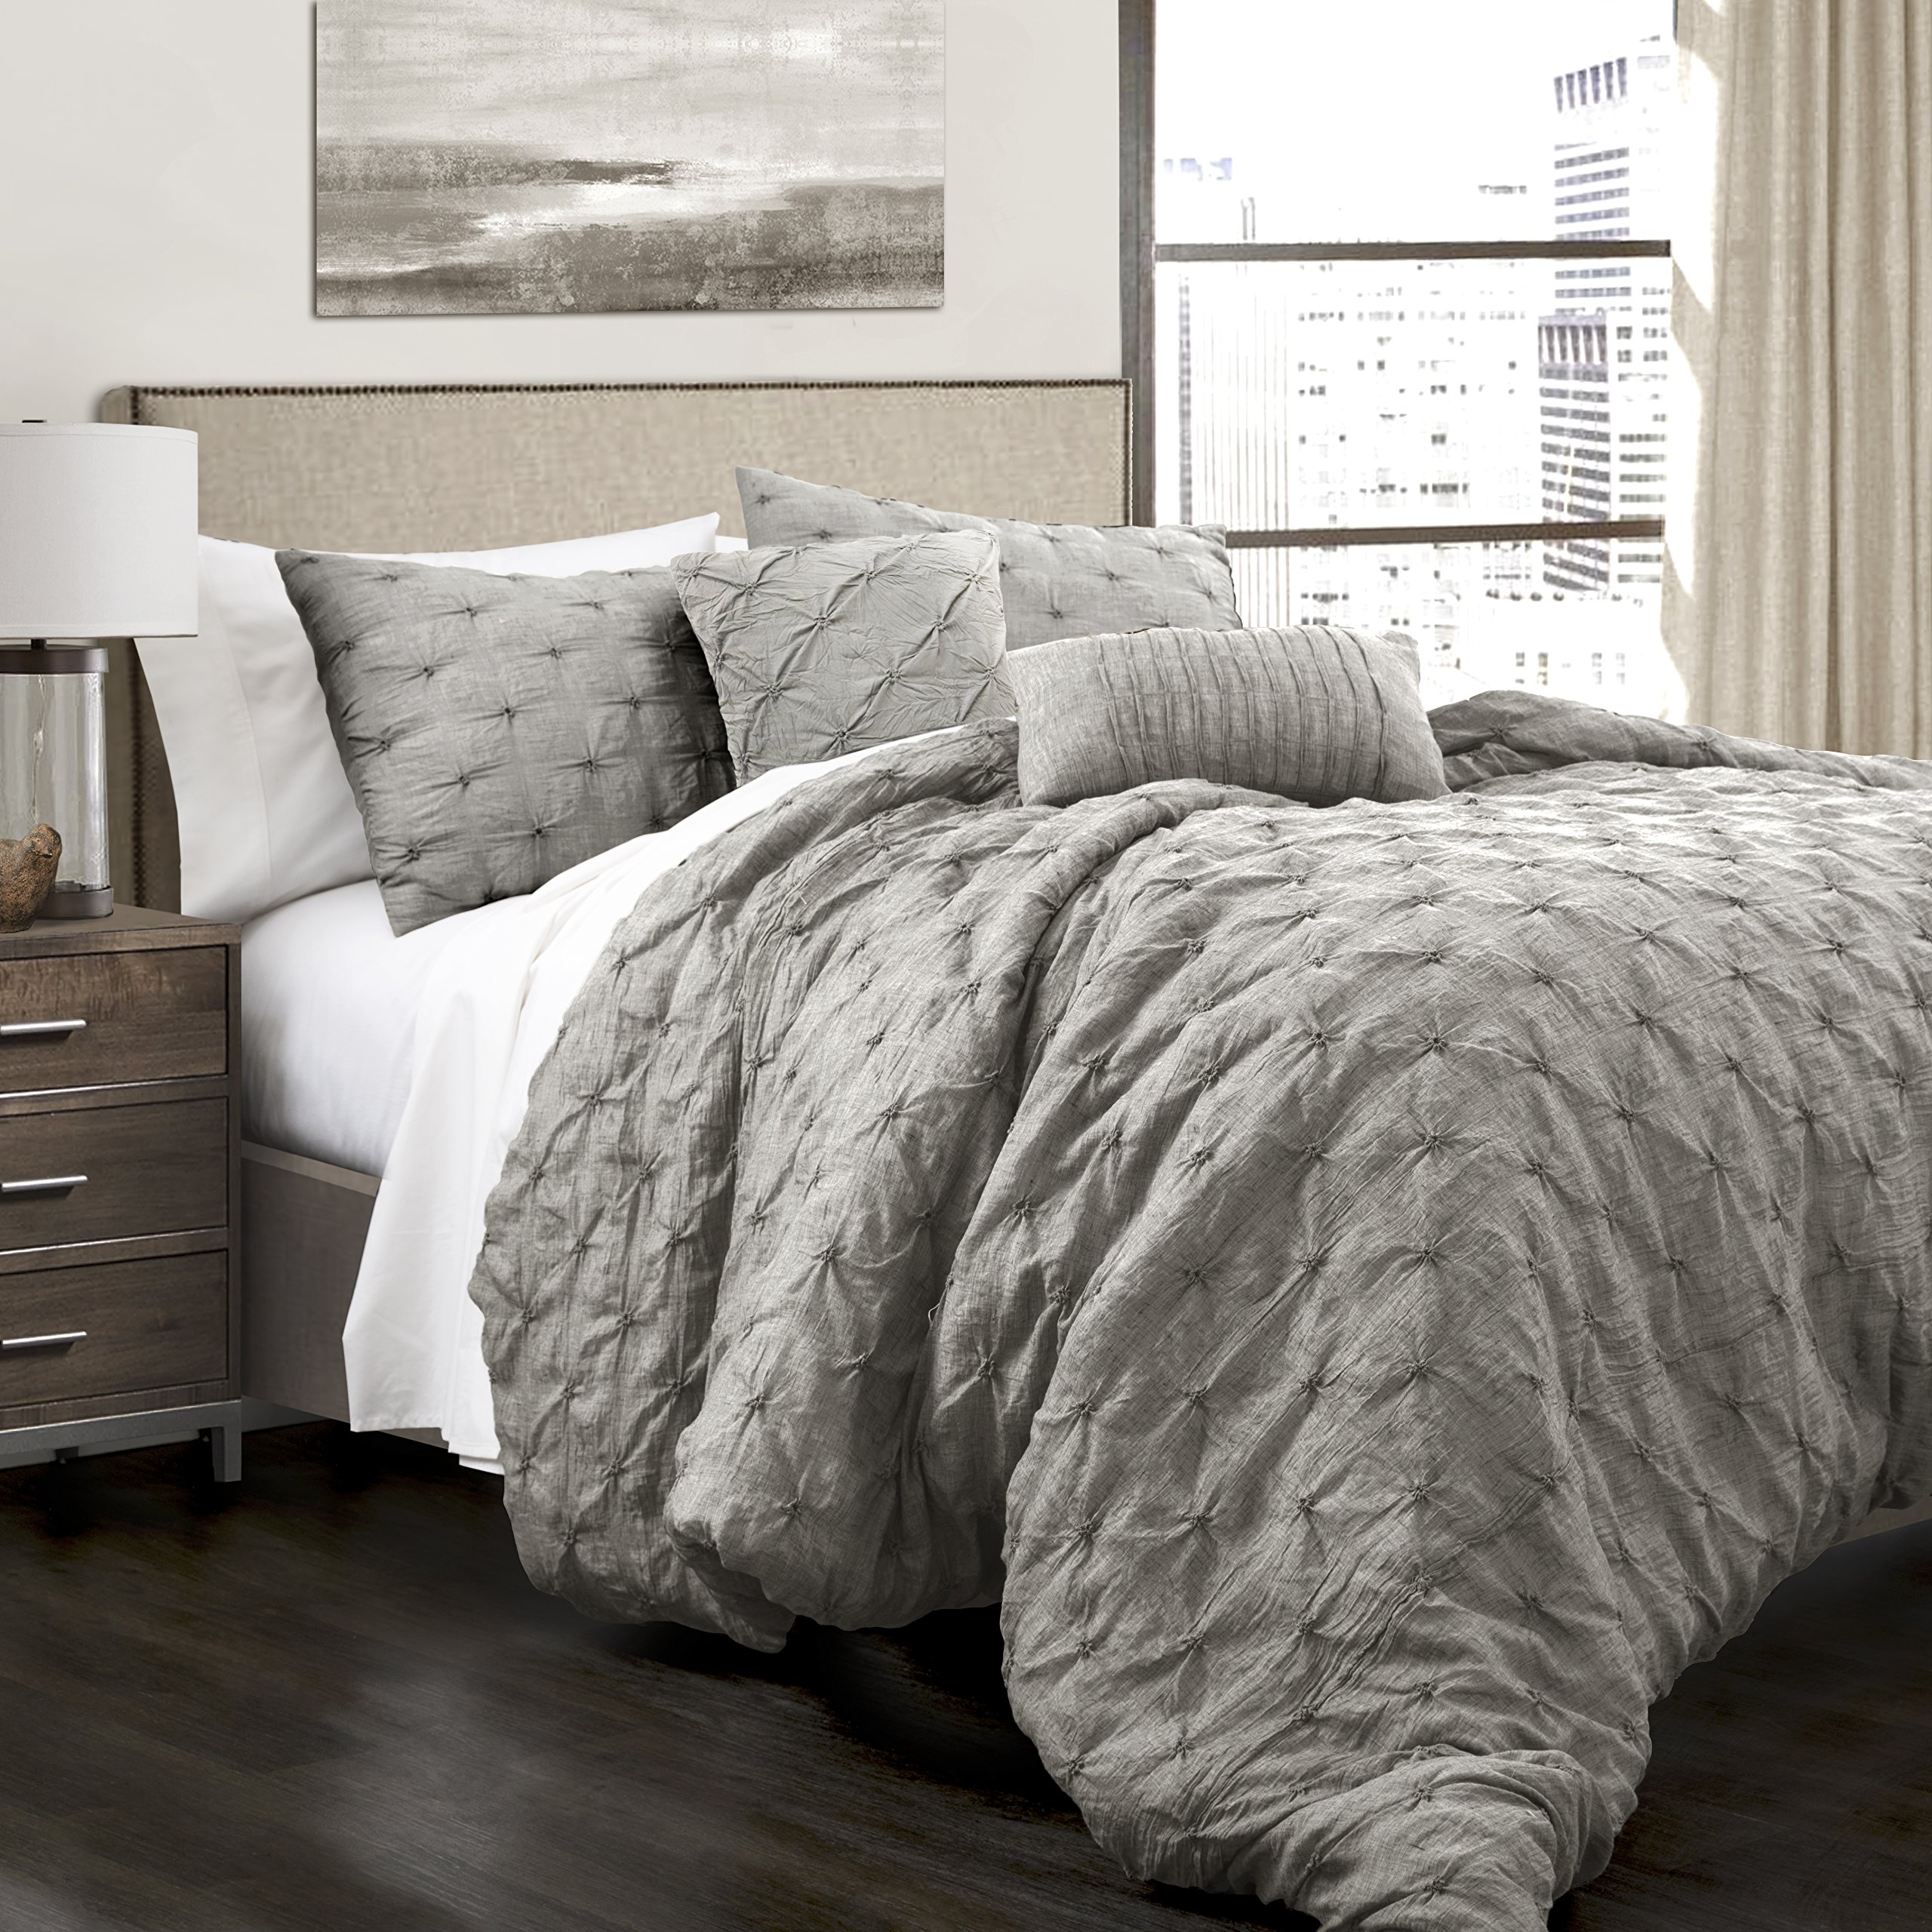 Lush Decor Lush Décor Ravello Pintuck 5 Piece Comforter Set, King, Gray